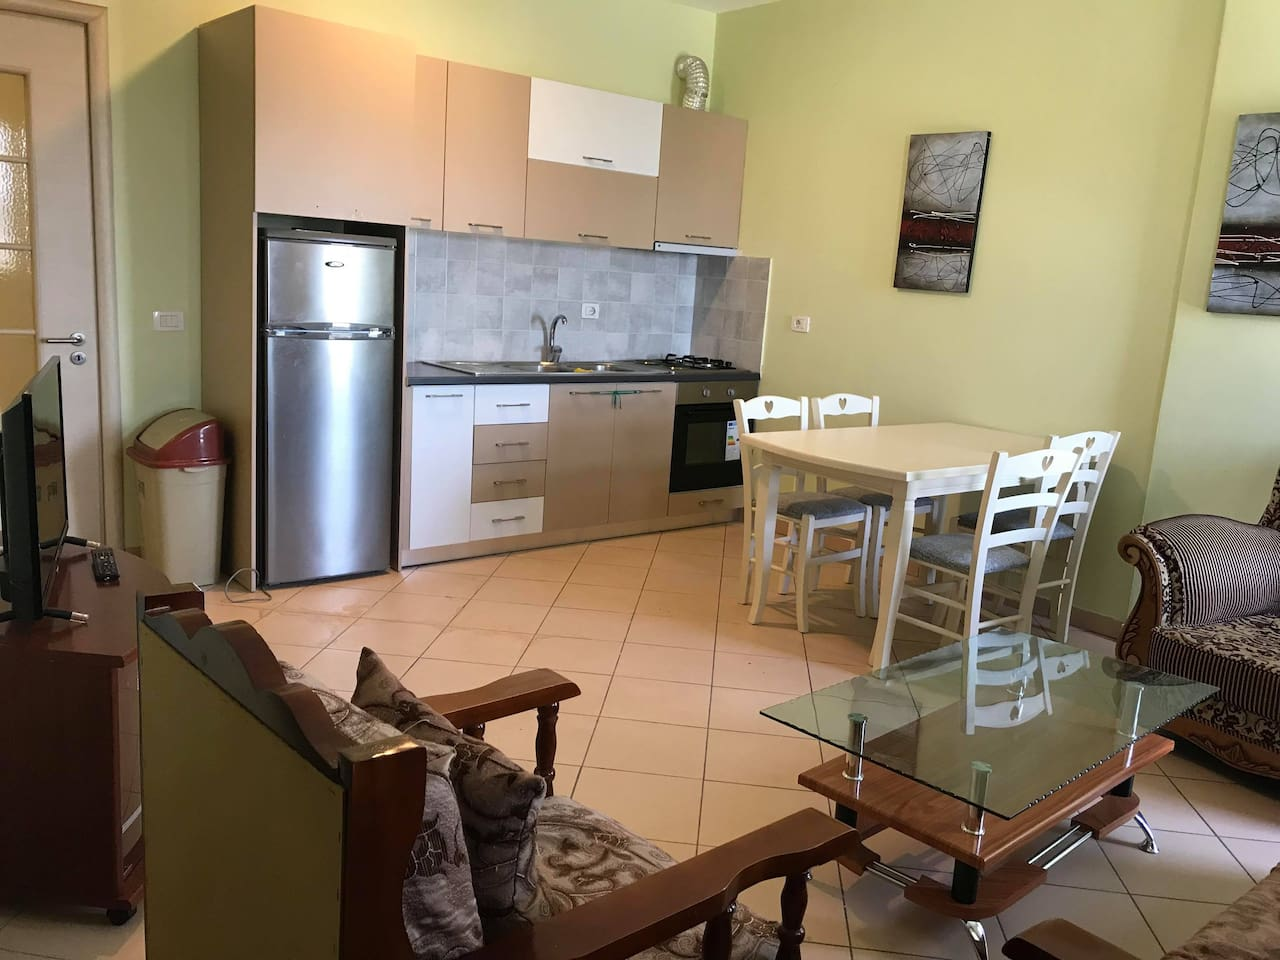 The kitchen is on a contermporary style with modern equipments where you can enjoy cooking and eating and also relaxing through using the wifi or watching tv. The views from the living area are relaxing and peaceful.